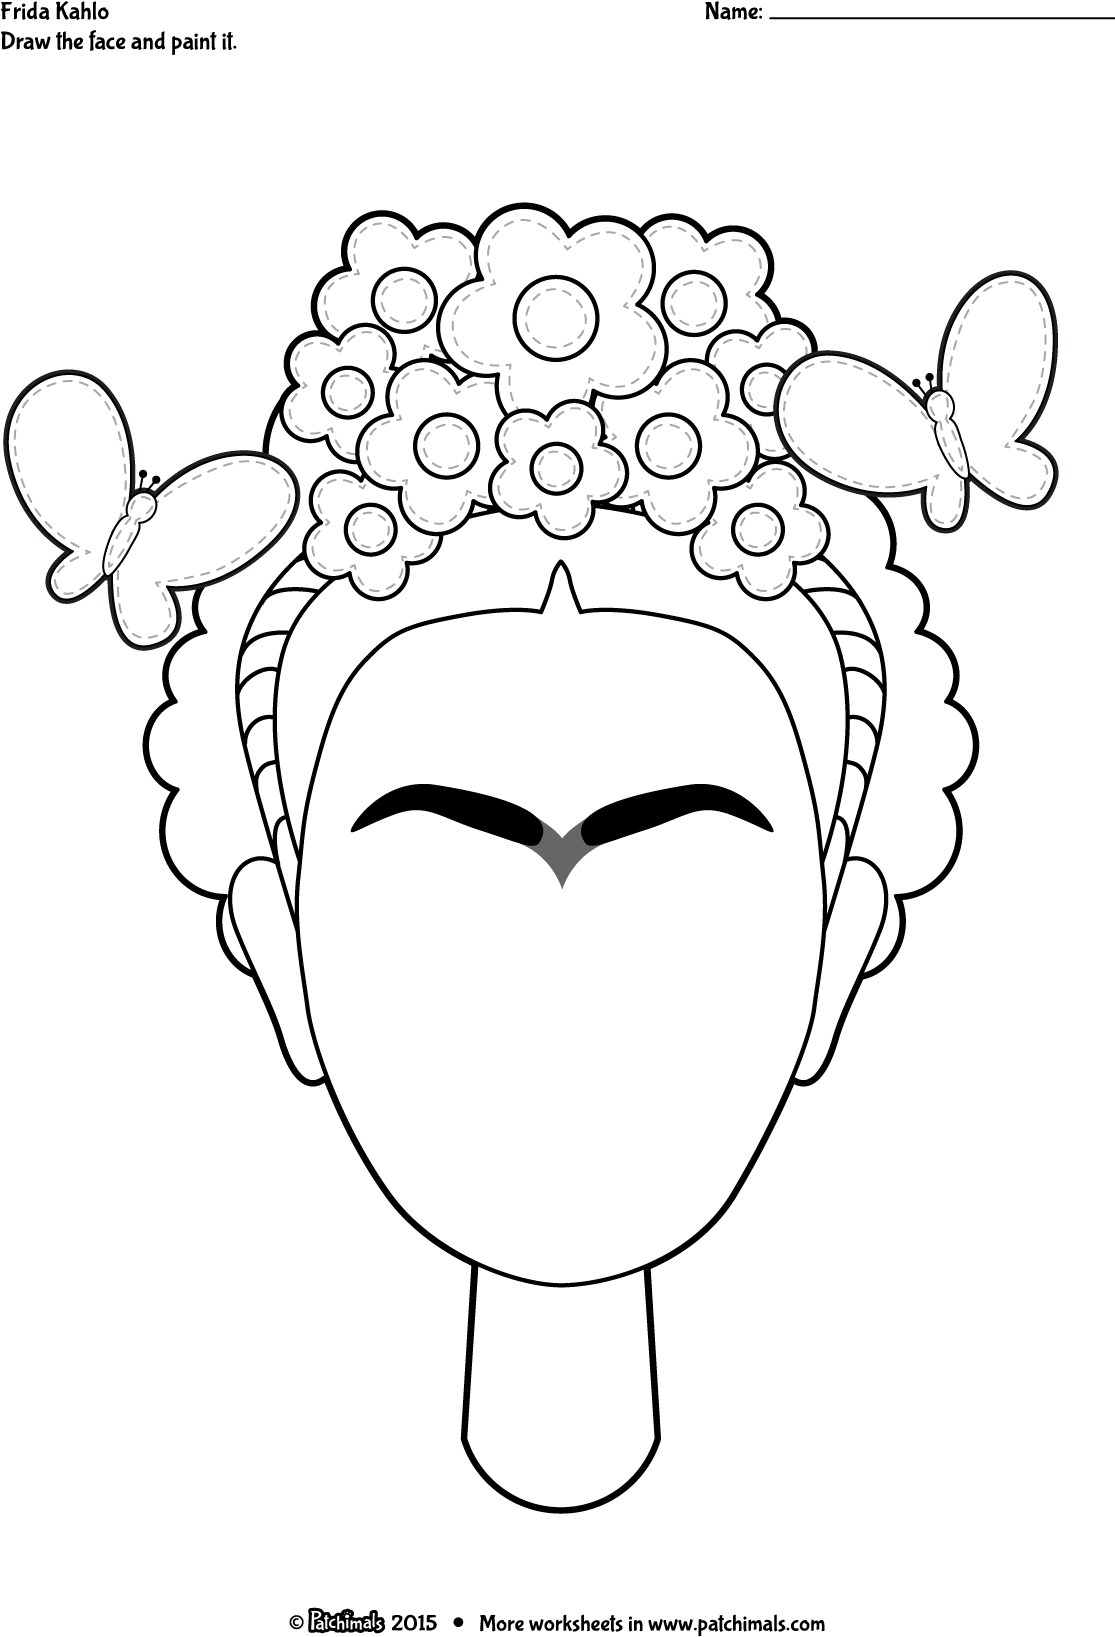 Worksheets Frida Kahlo Worksheets color frida eng png kahlo self portrait